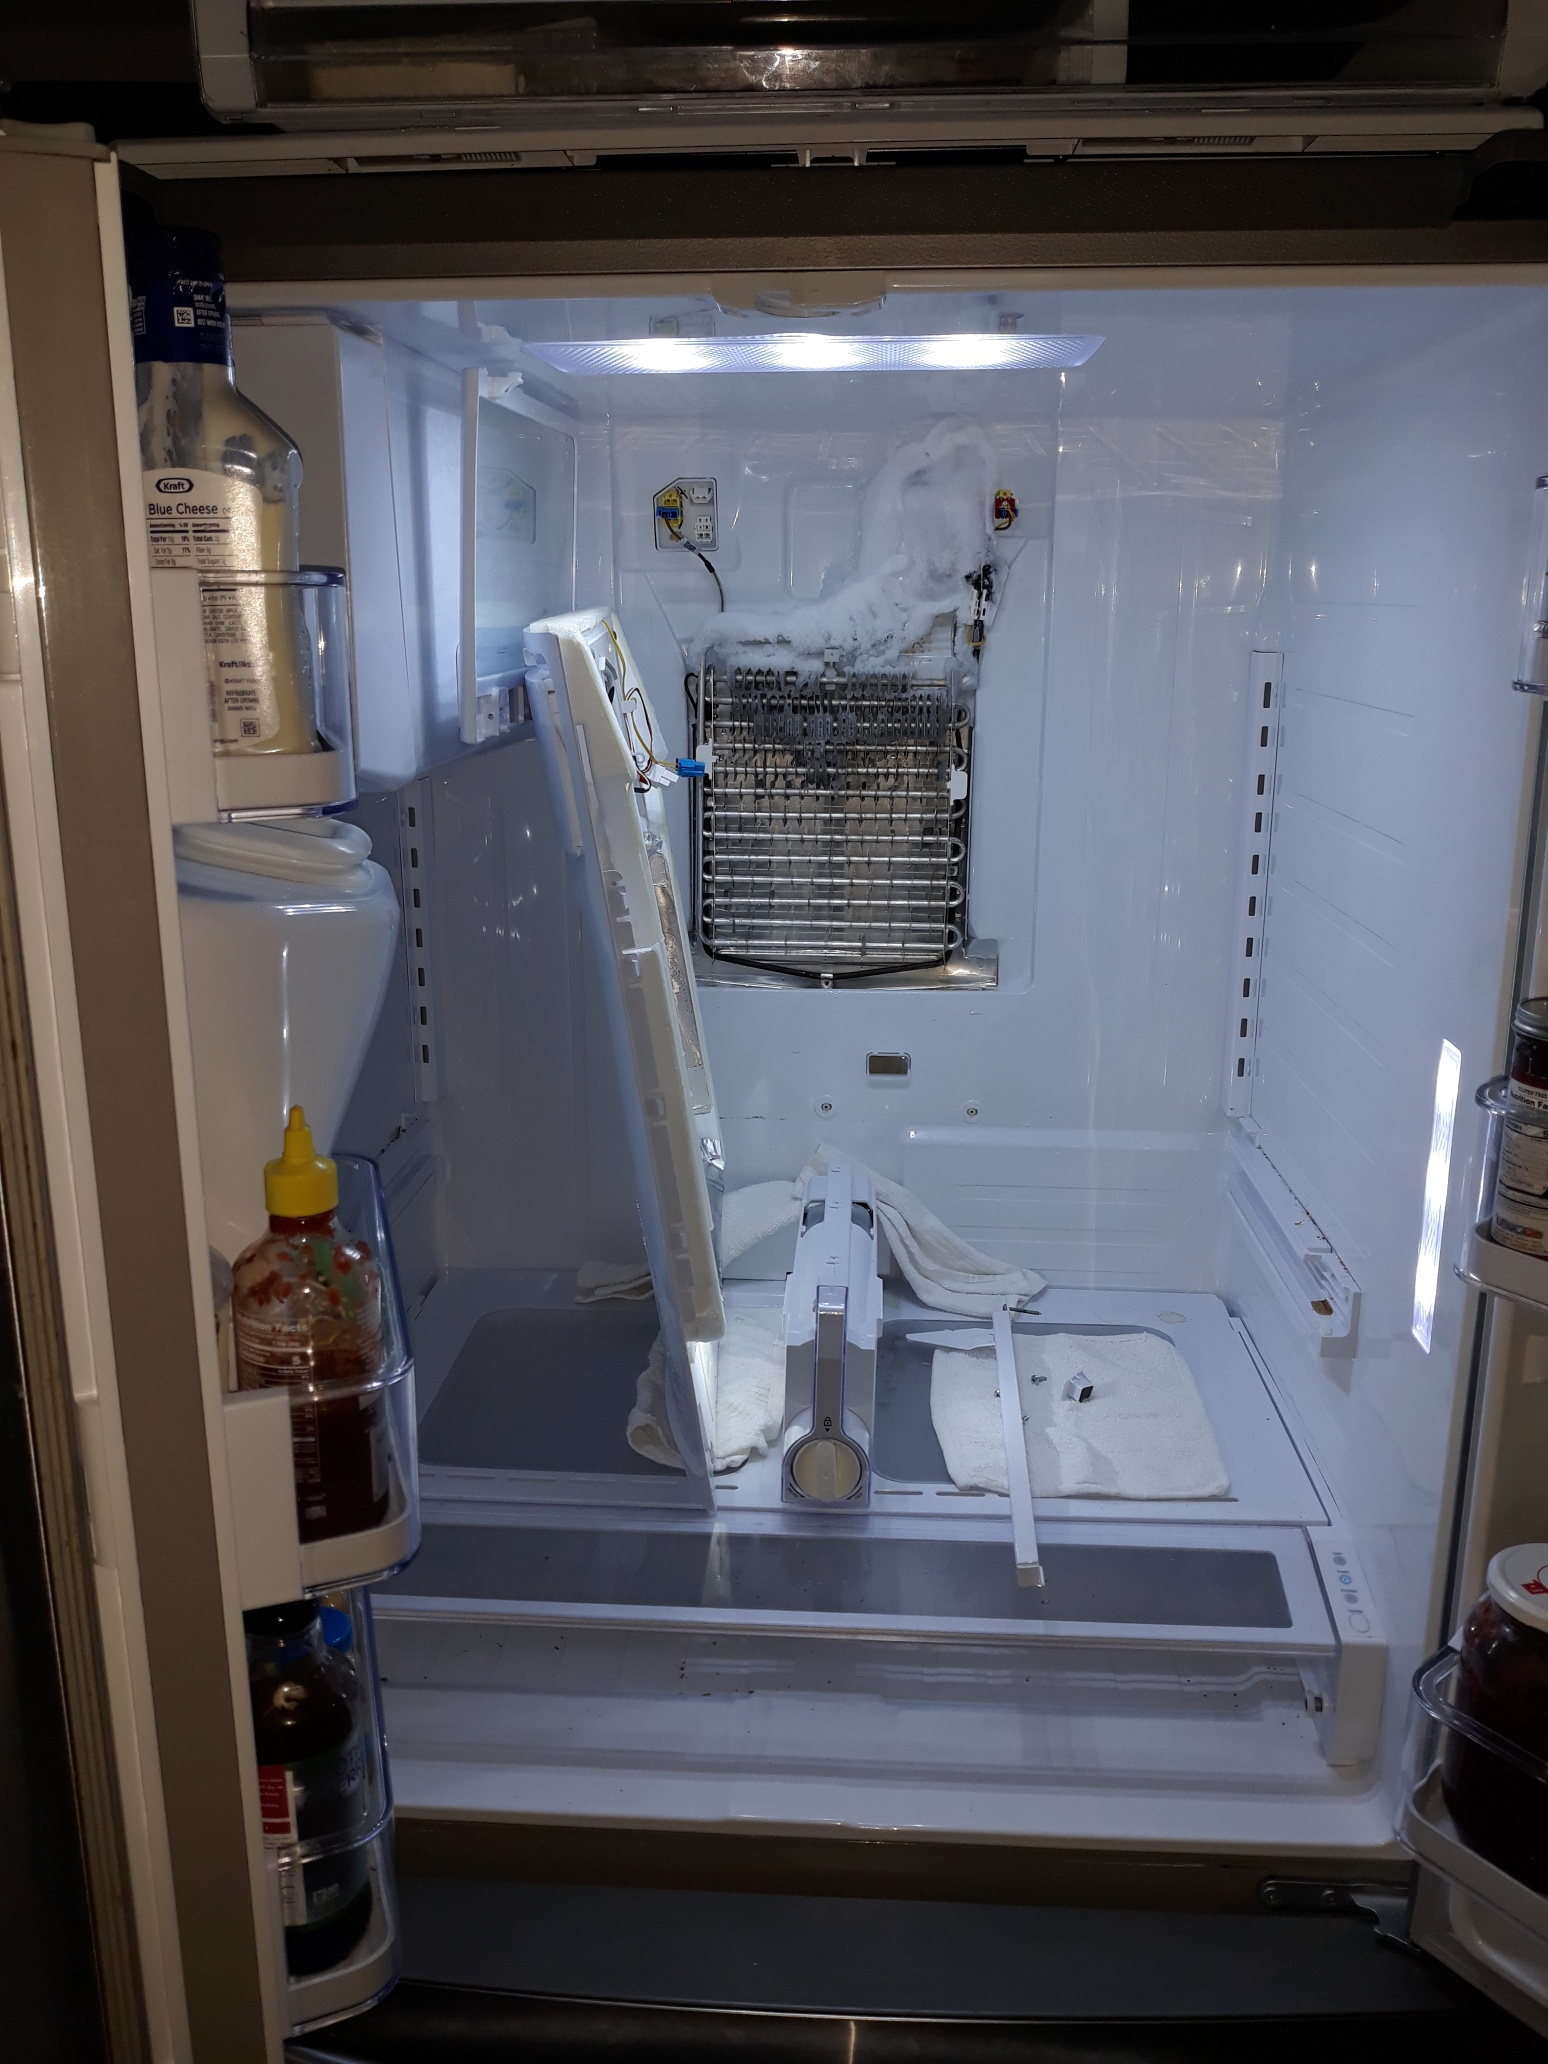 appliance repair refrigerator repair not cooling ice build up lake mary fl